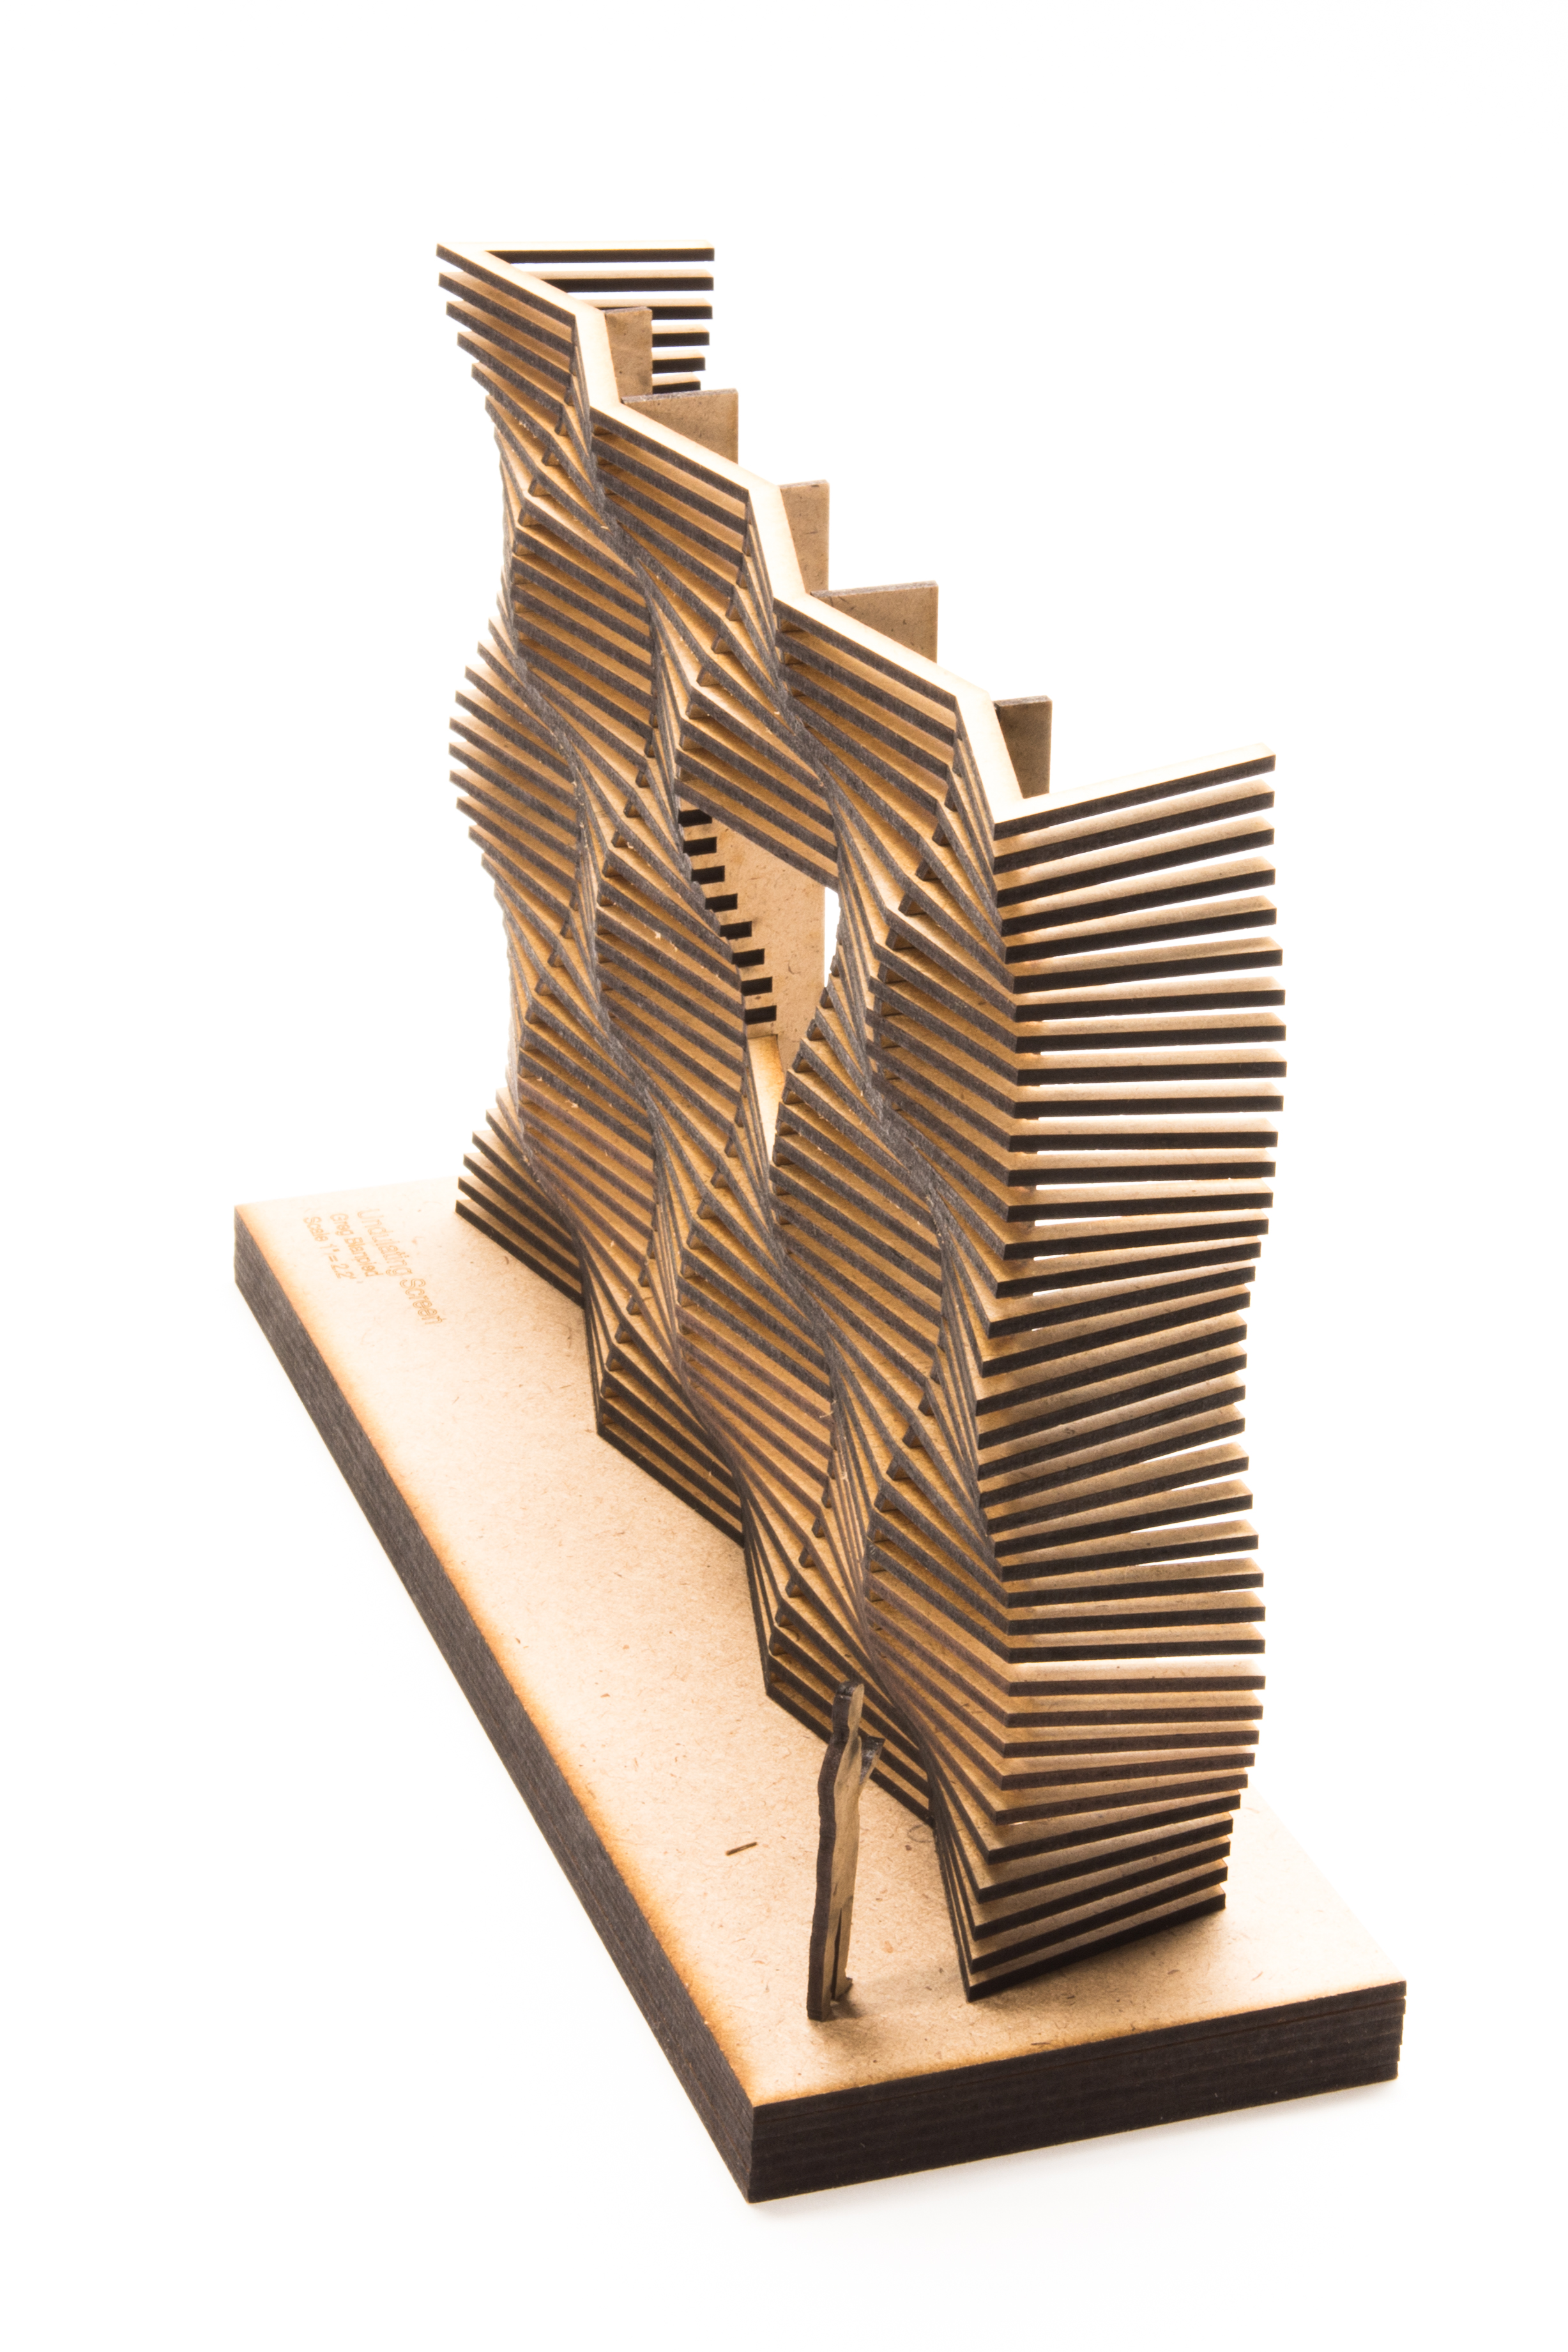 This model highlights the unique visual effect that is achieved through the undulating pattern.